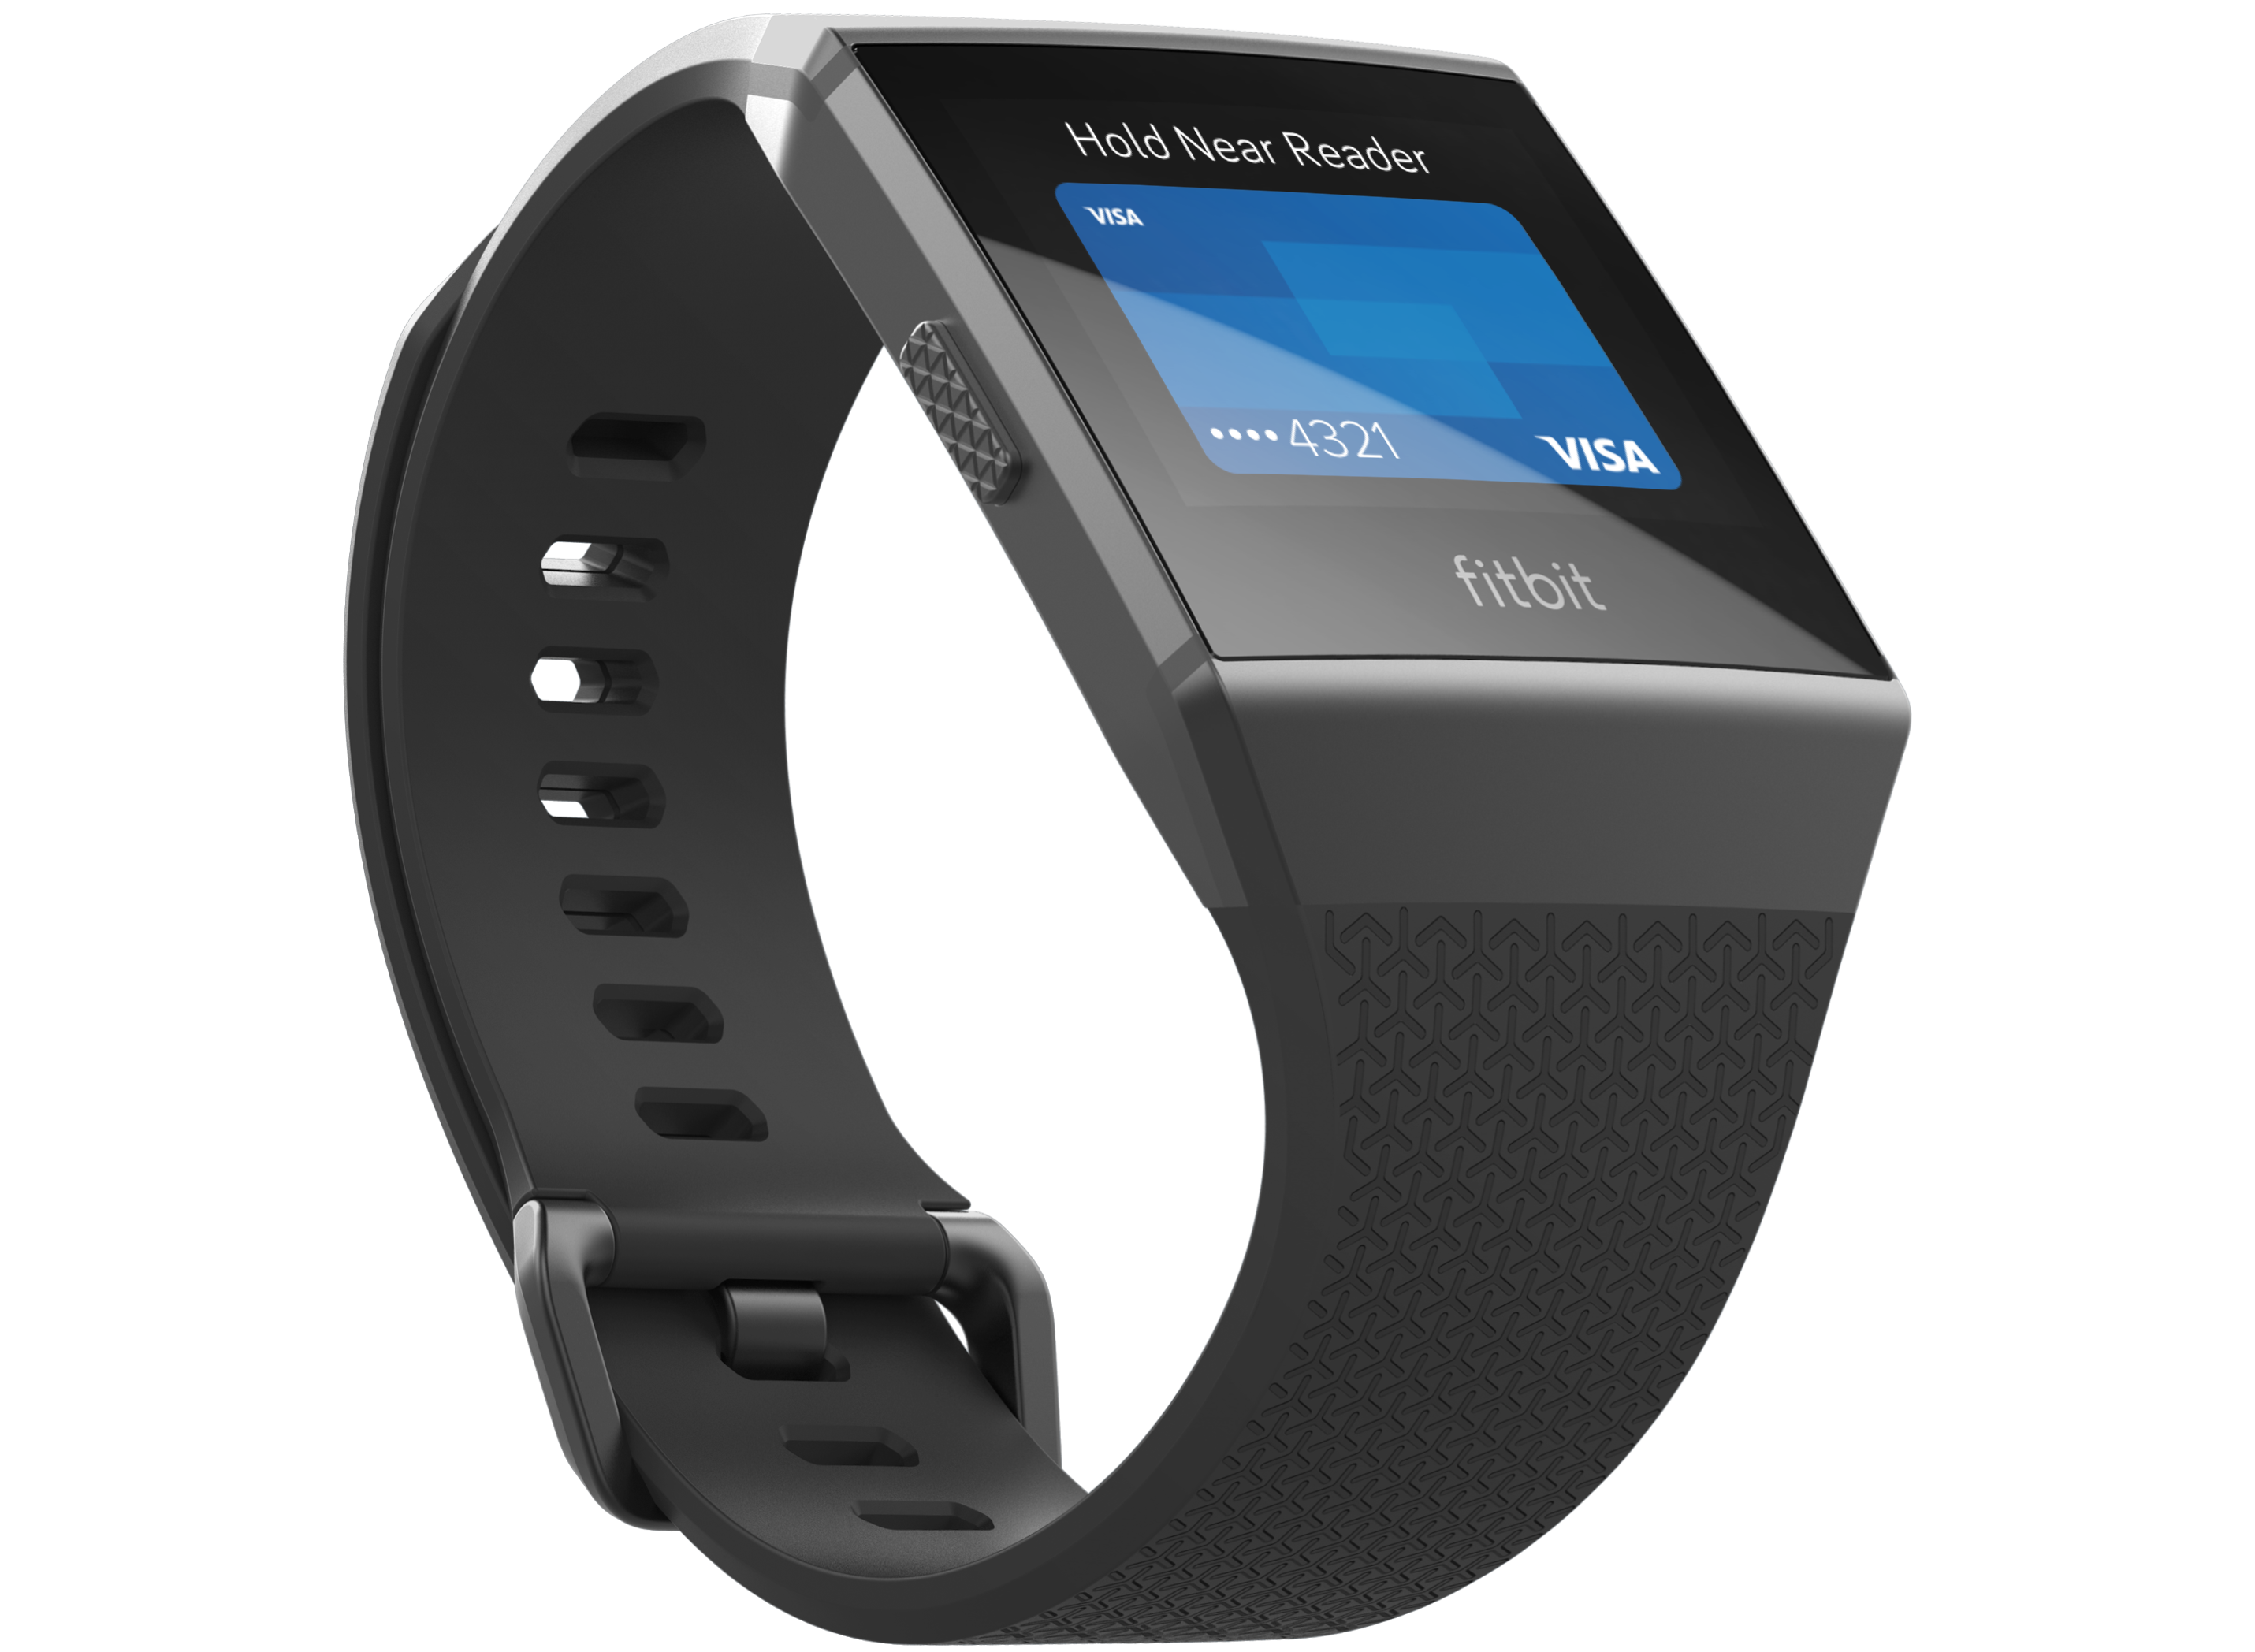 Fitbit - Fitbit HD PNG